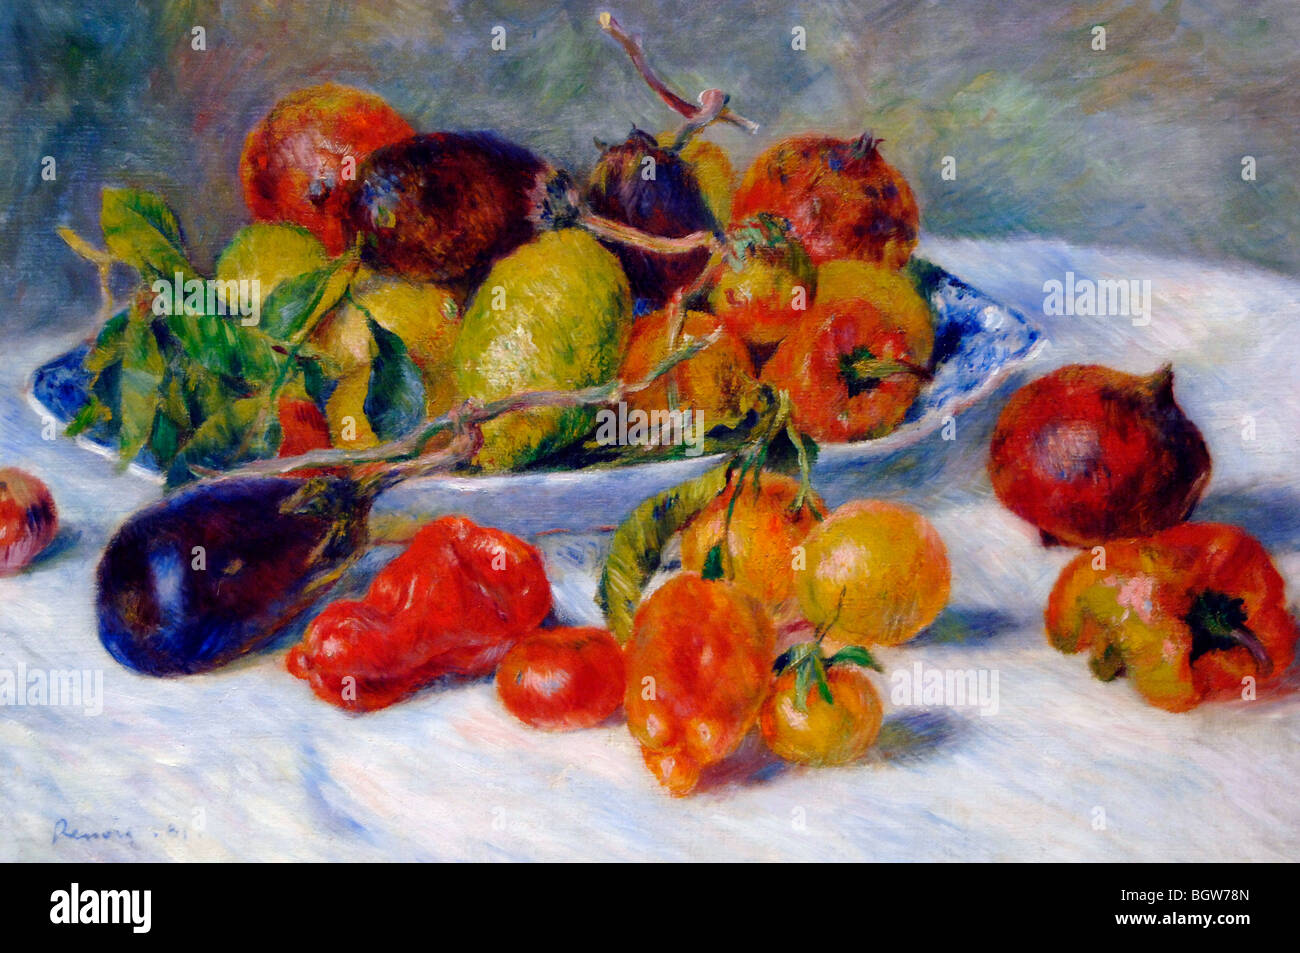 Pierre-Auguste Renoir Fruits du Midi 1881 Photo Stock